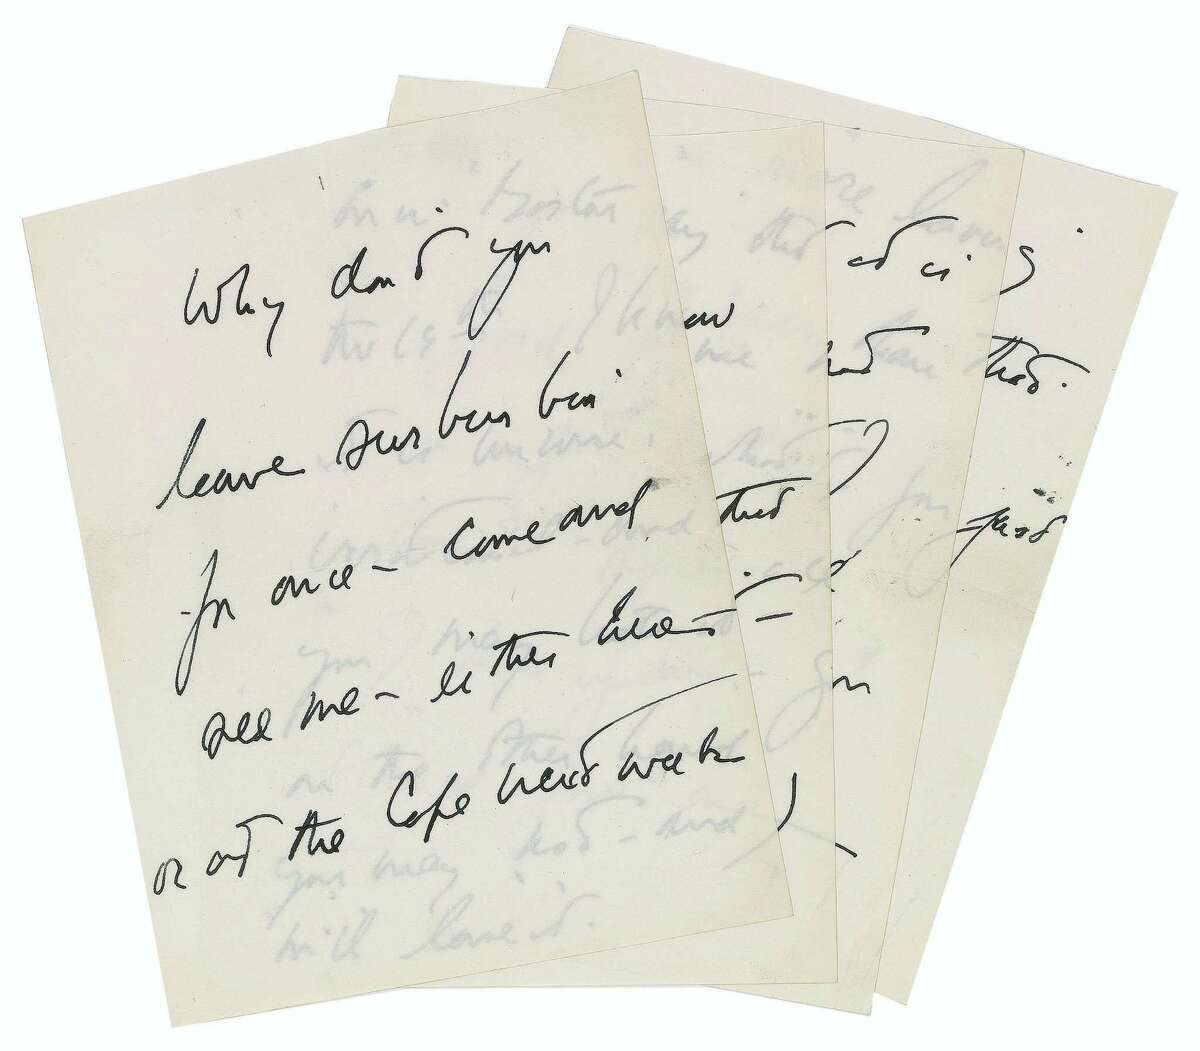 This April 15, 2016 photo provided by RR Auction shows a hand-written letter by President John F. Kennedy. The letter written by Kennedy to a purported paramour seeking to set up a liaison is one of several Kennedy-related items being sold at auction. The online auction is being held by Boston-based RR Auction starting June 16.